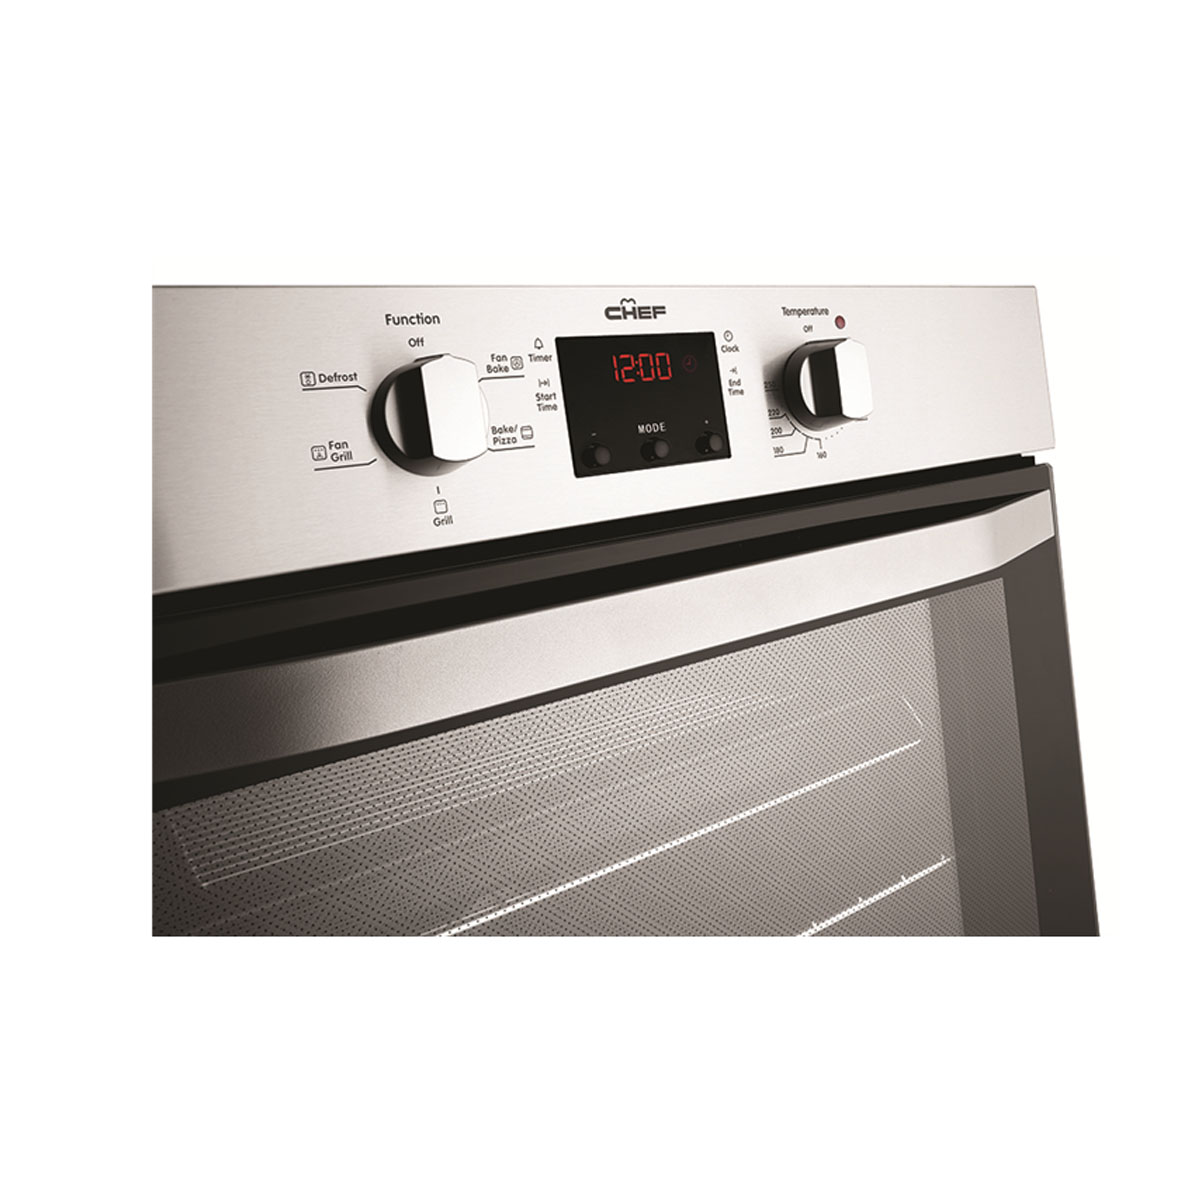 Chef CVE614SA 60cm Electric Built-In Single Oven 31712